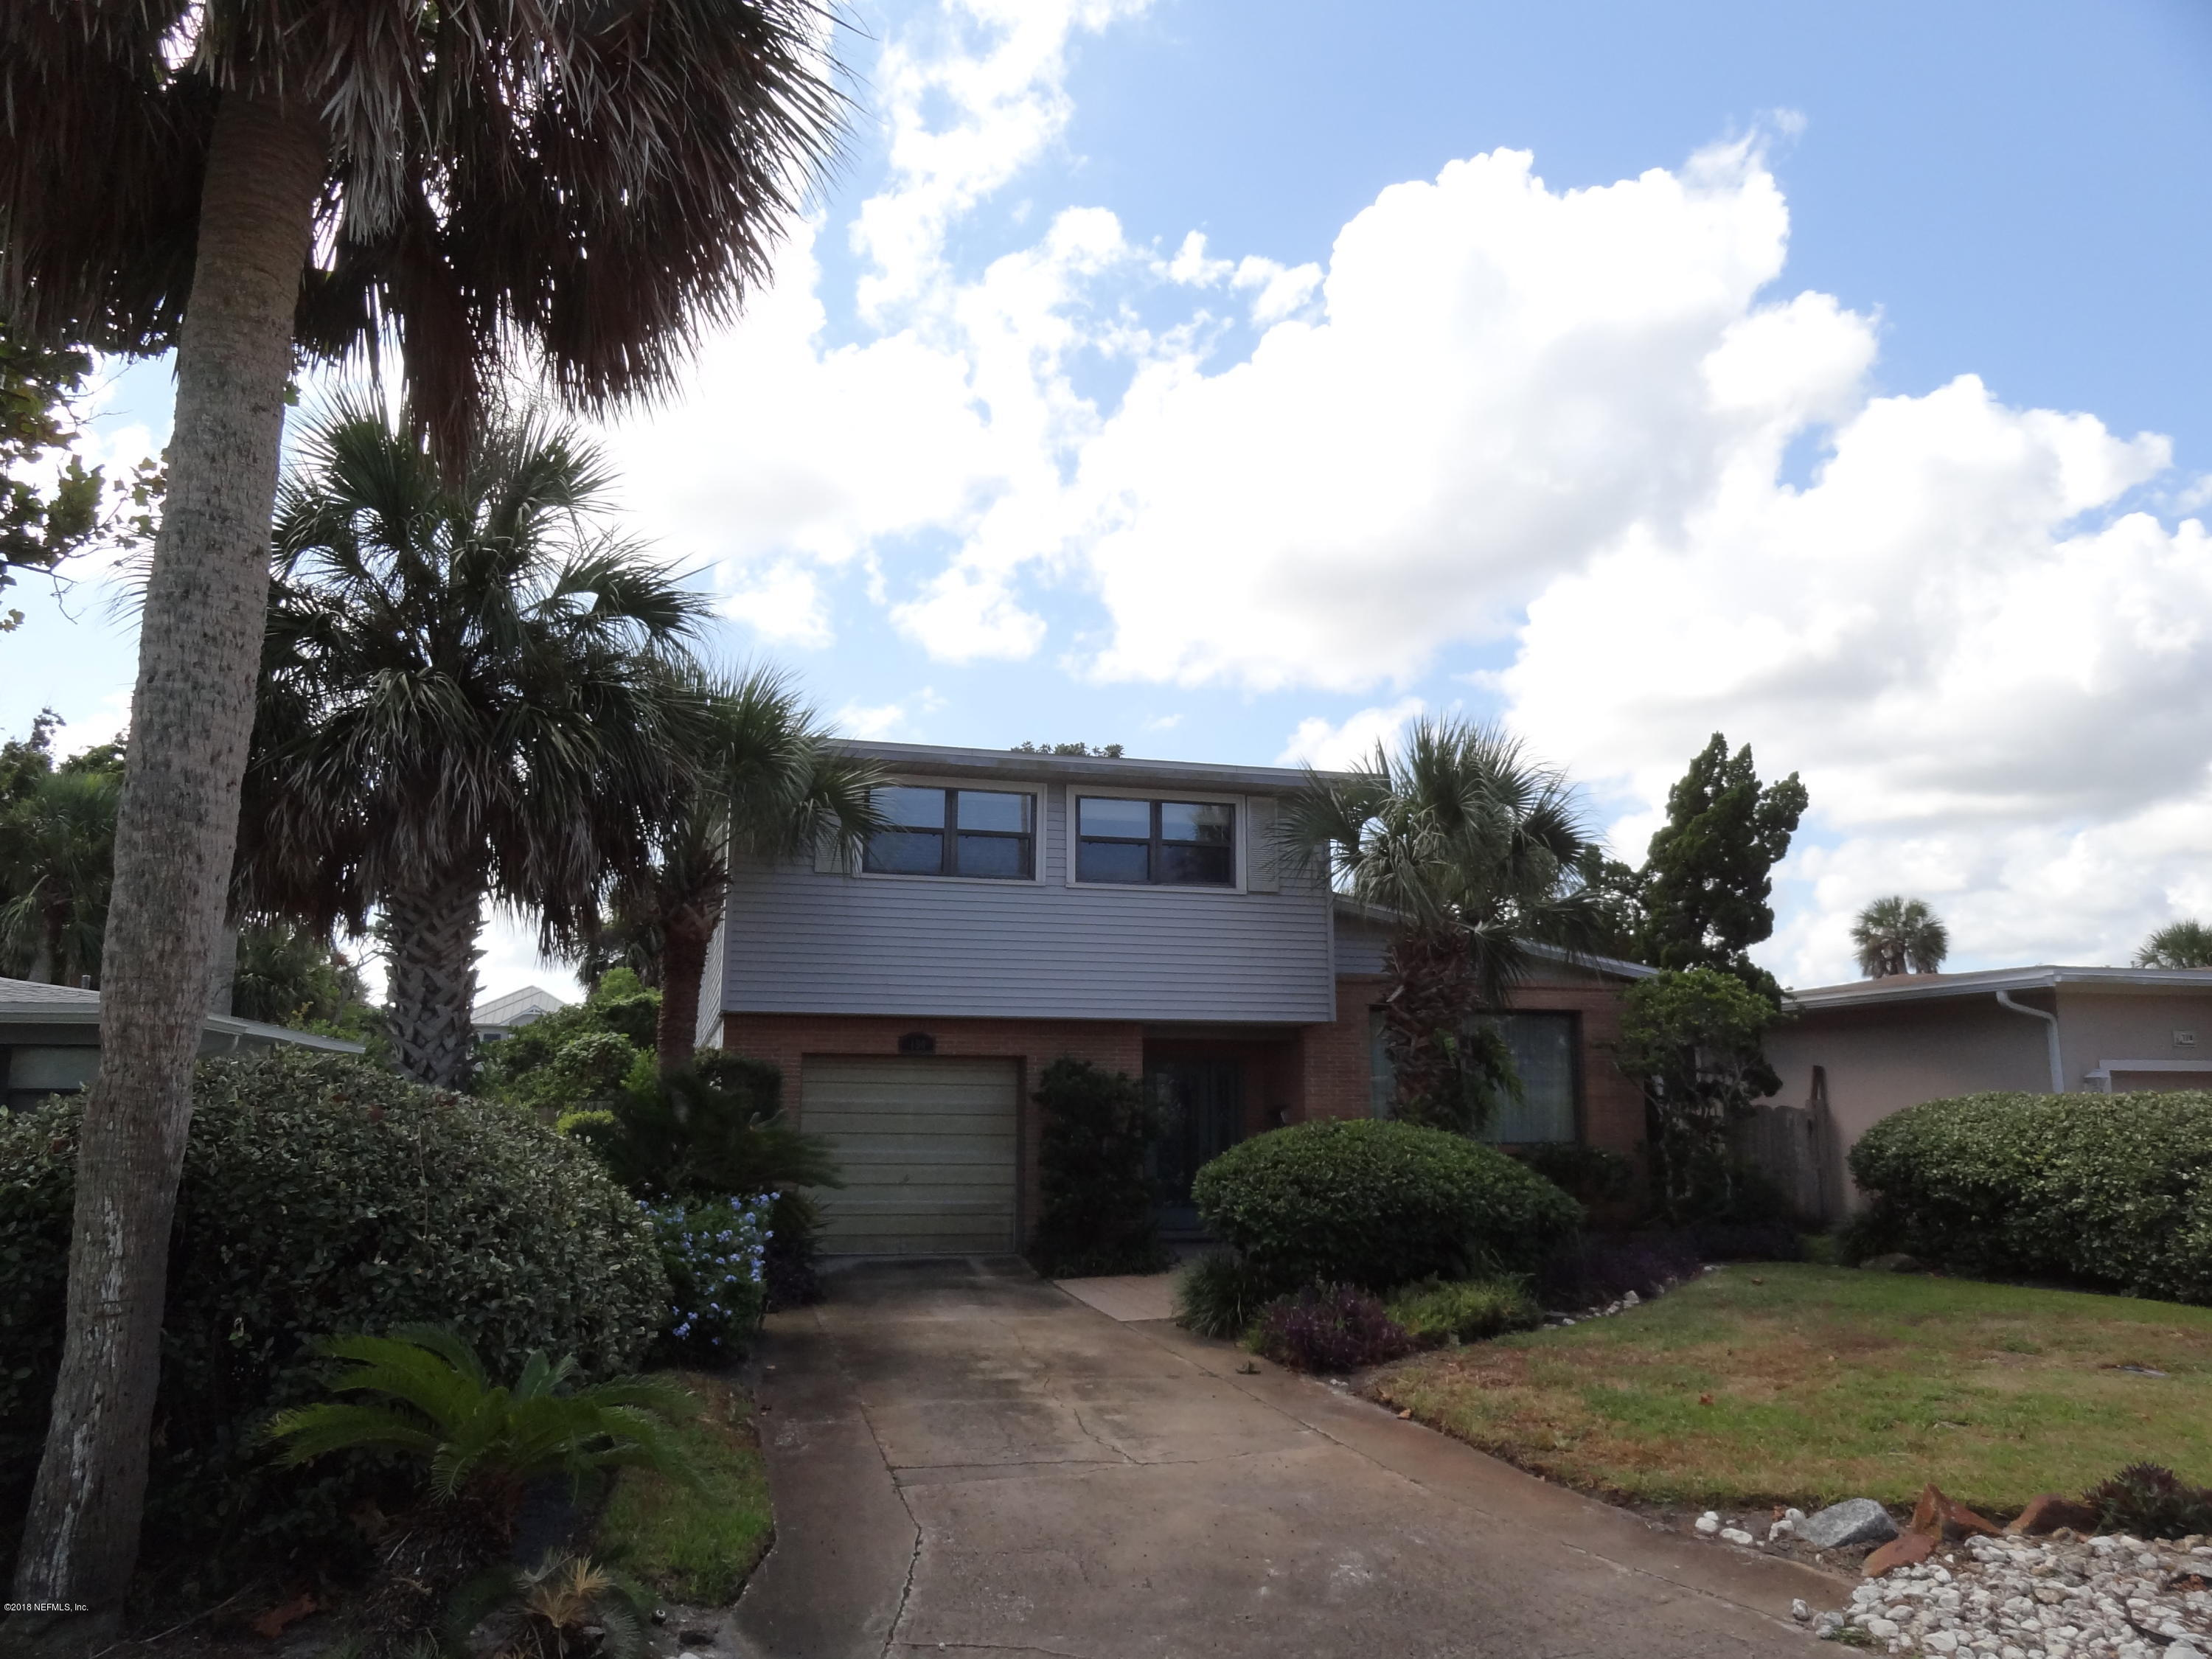 130 35TH, JACKSONVILLE BEACH, FLORIDA 32250, 3 Bedrooms Bedrooms, ,3 BathroomsBathrooms,Residential - single family,For sale,35TH,959846